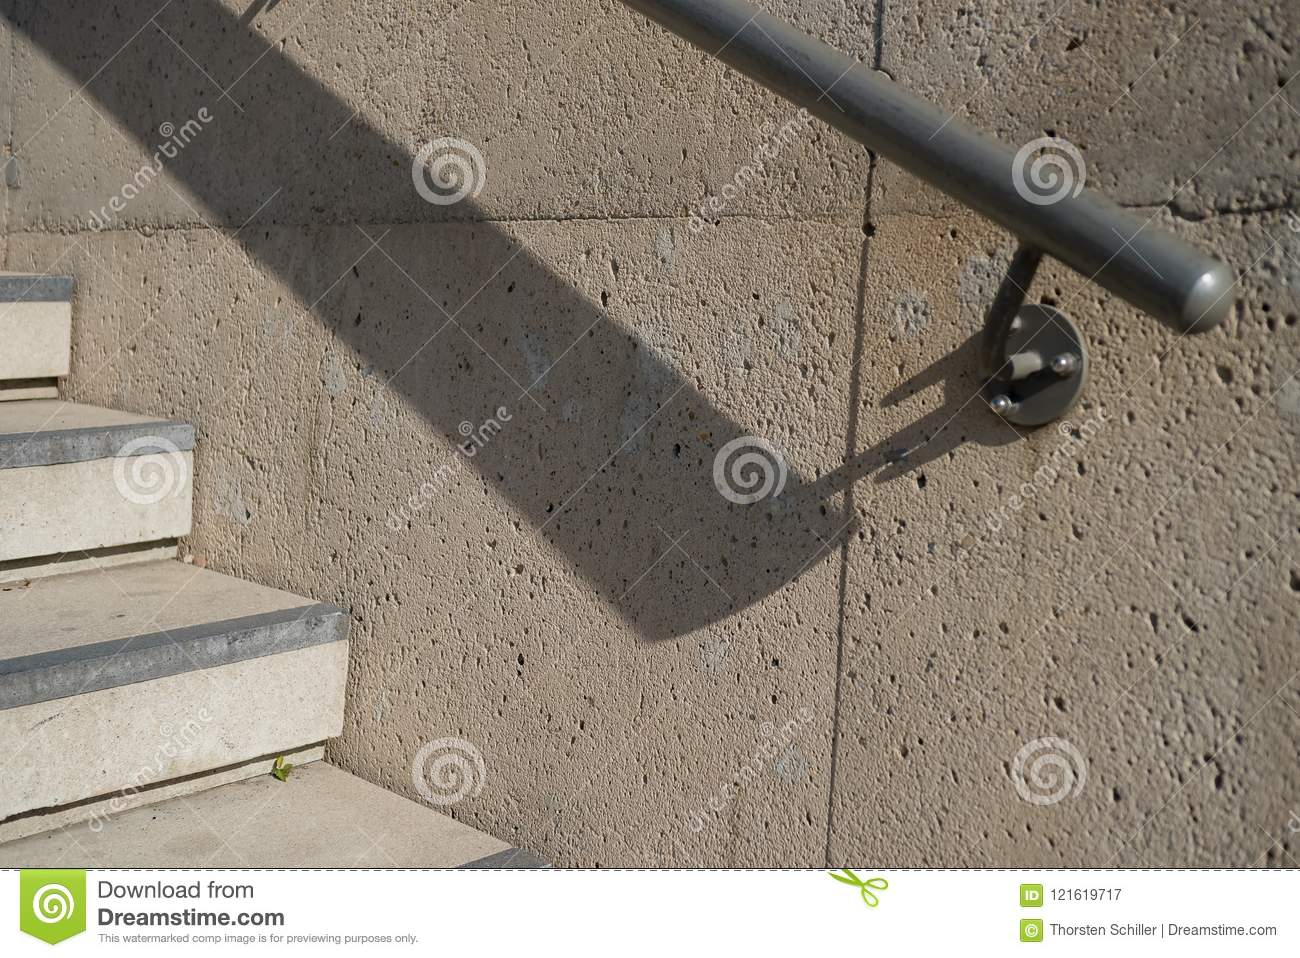 Handrail and stair steps of concrete with deep shadow